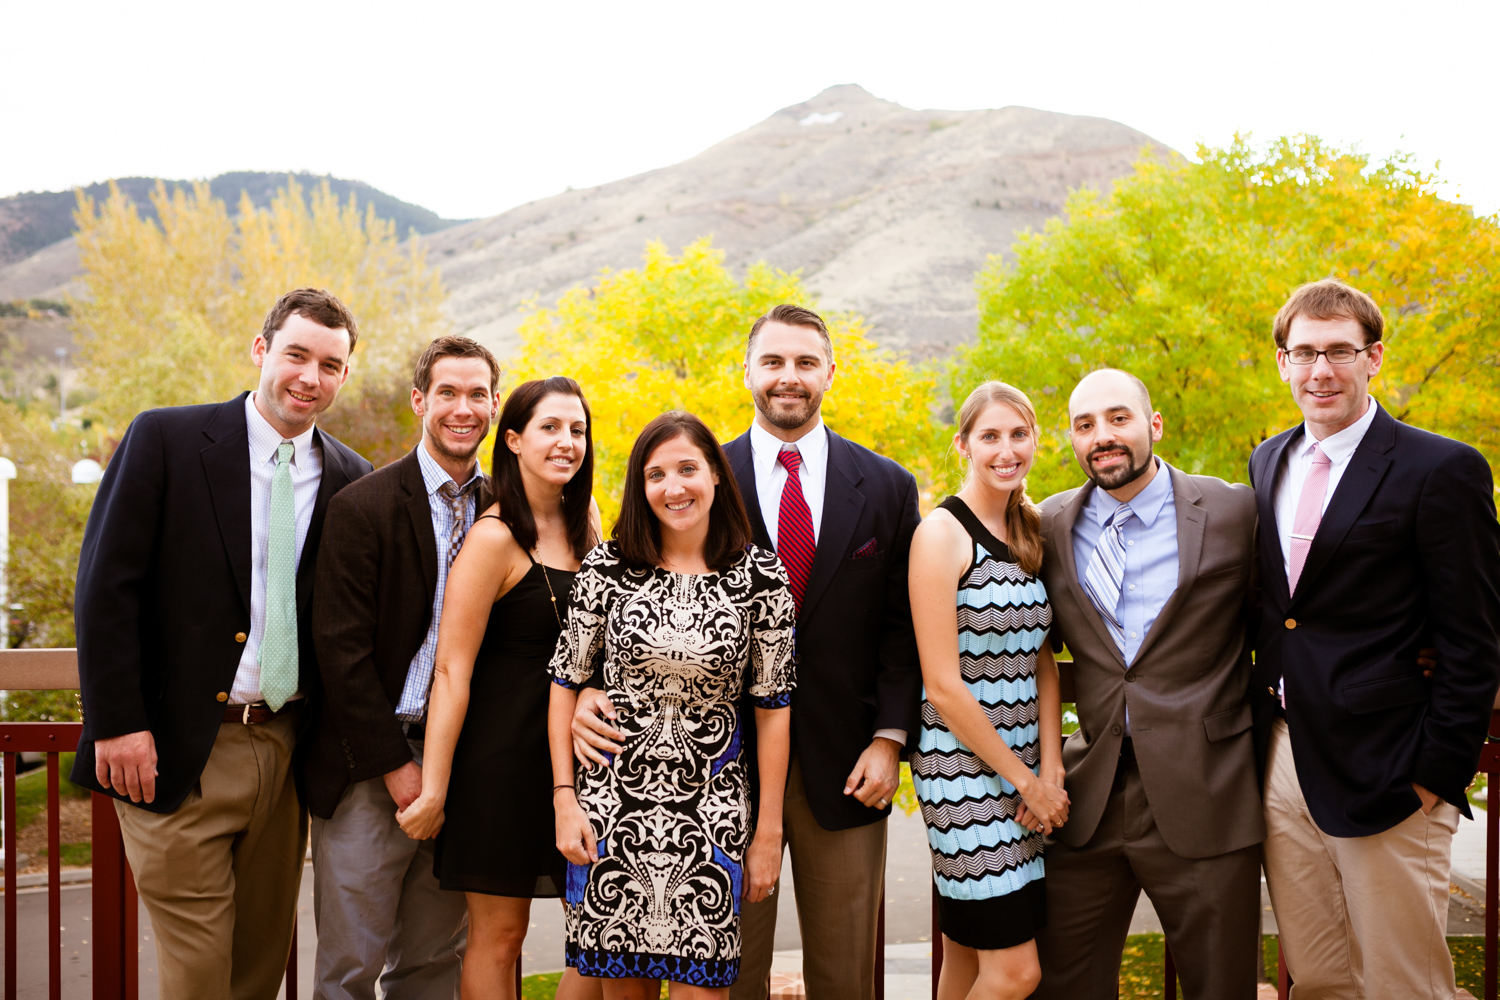 Coal_Creek_Canyon_Wedding_082.JPG